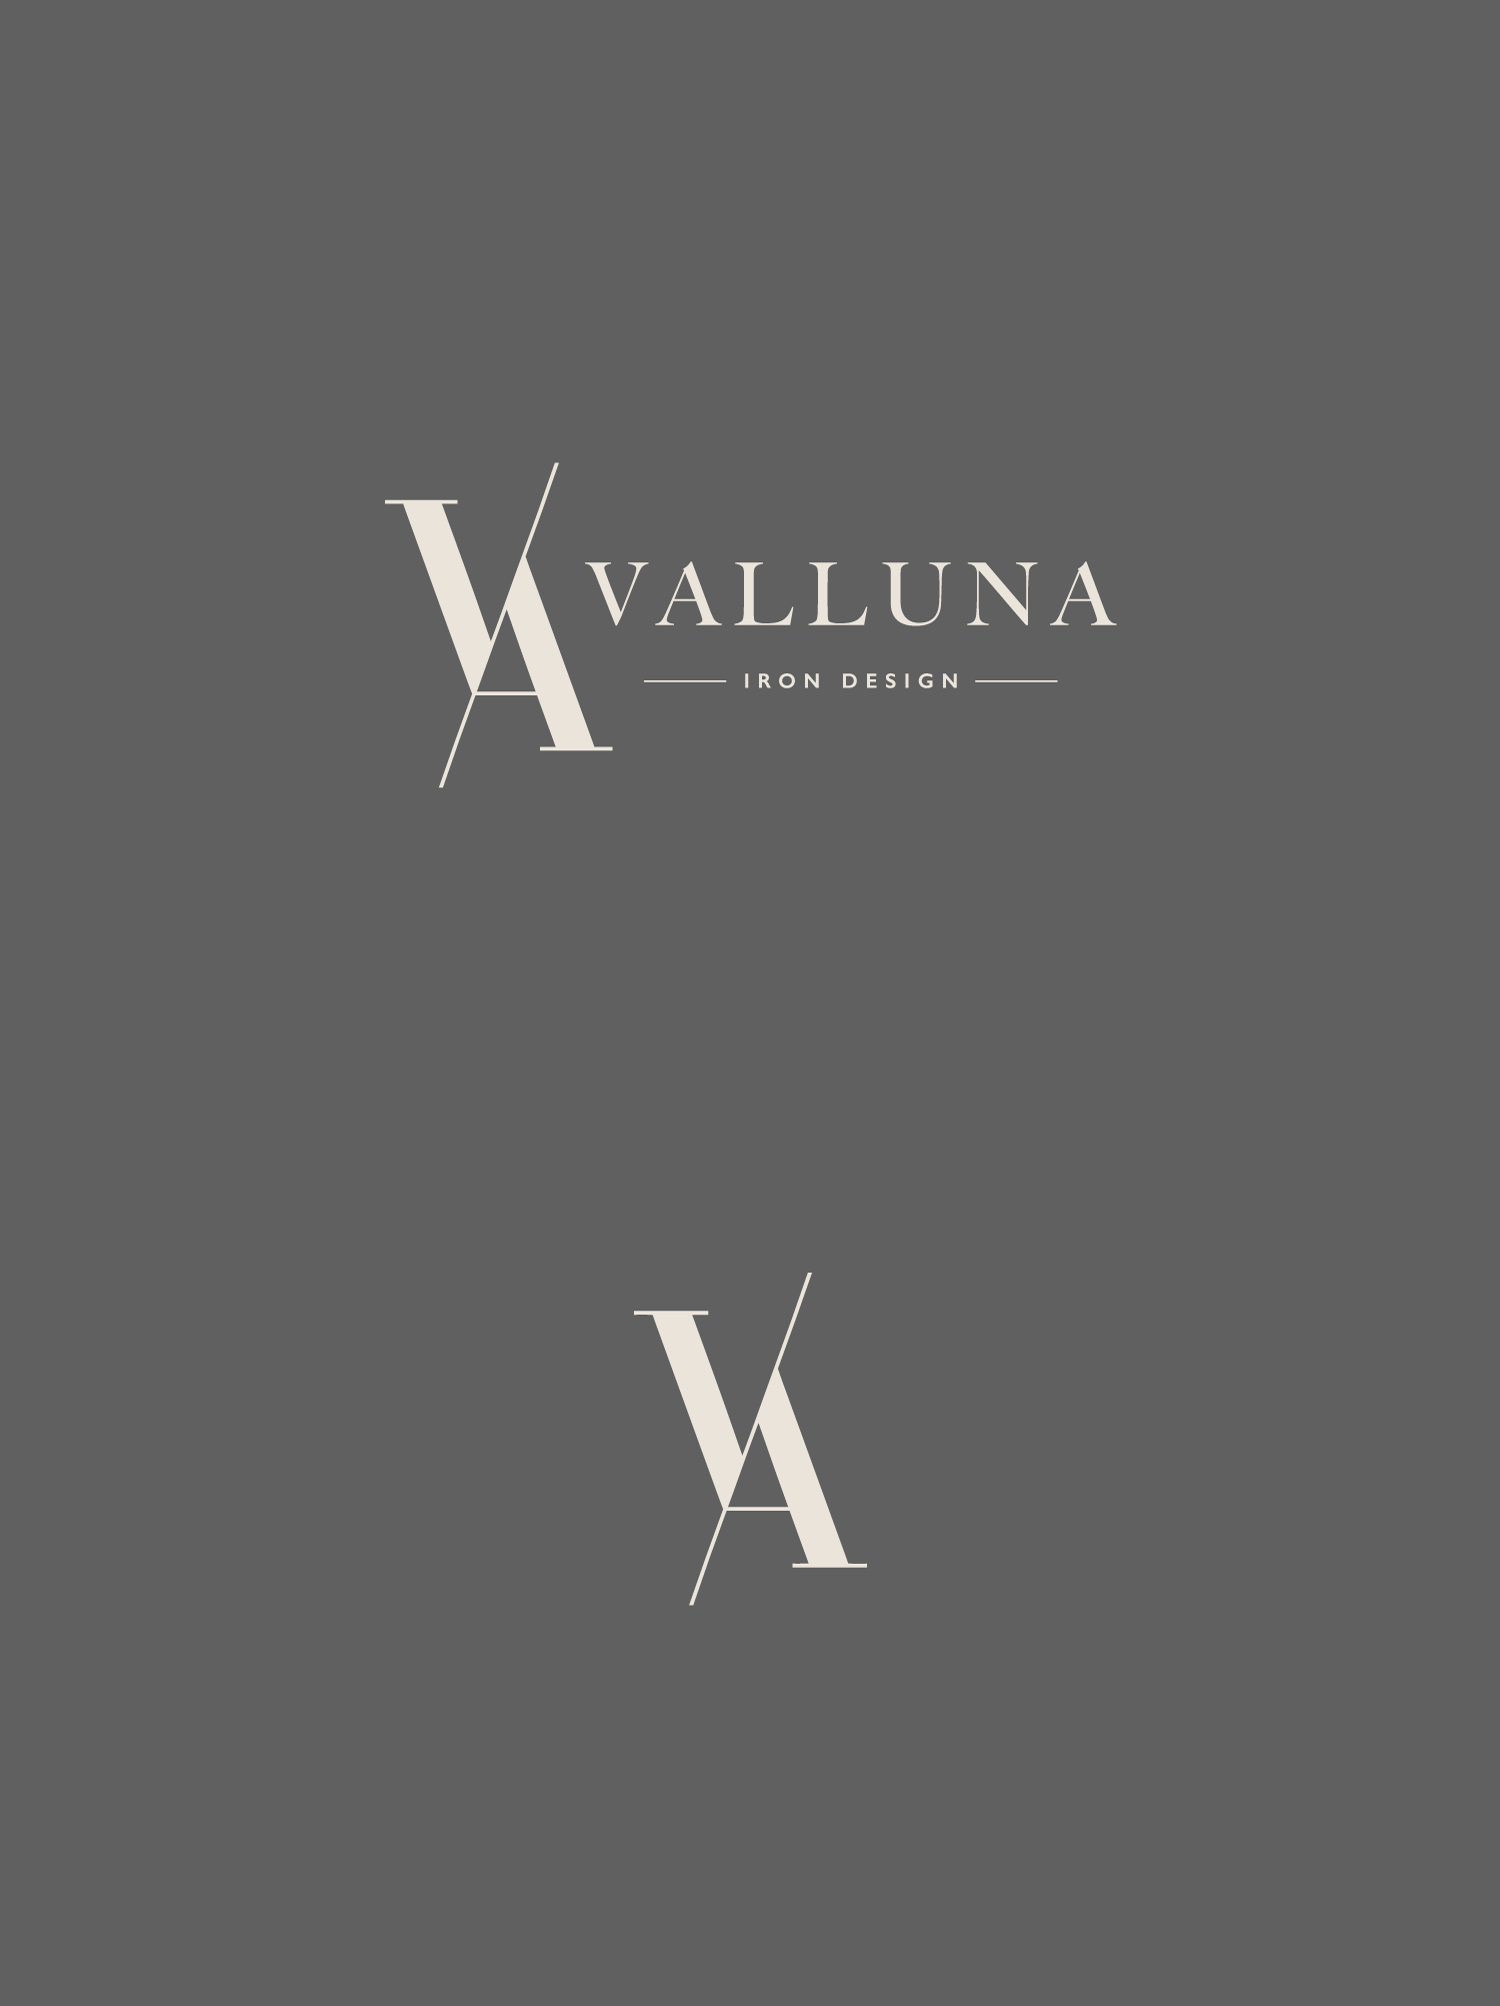 Valluna_variations.png